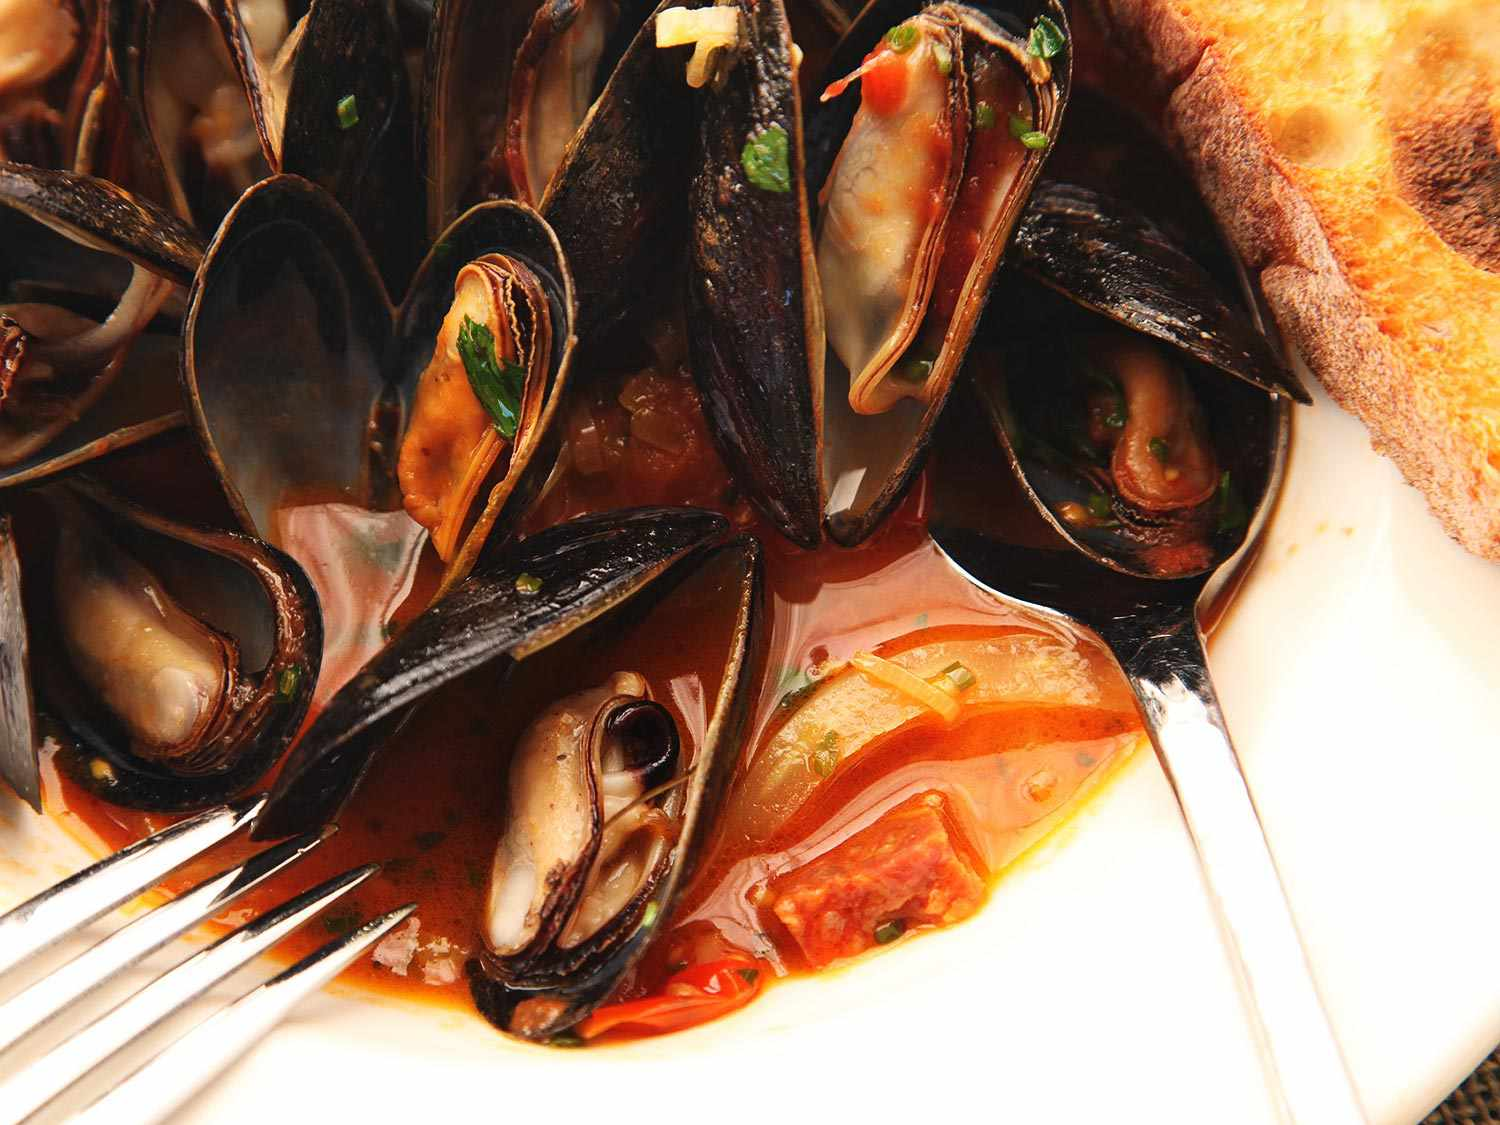 20141026-mussels-how-to-food-lab-saffron2.jpg